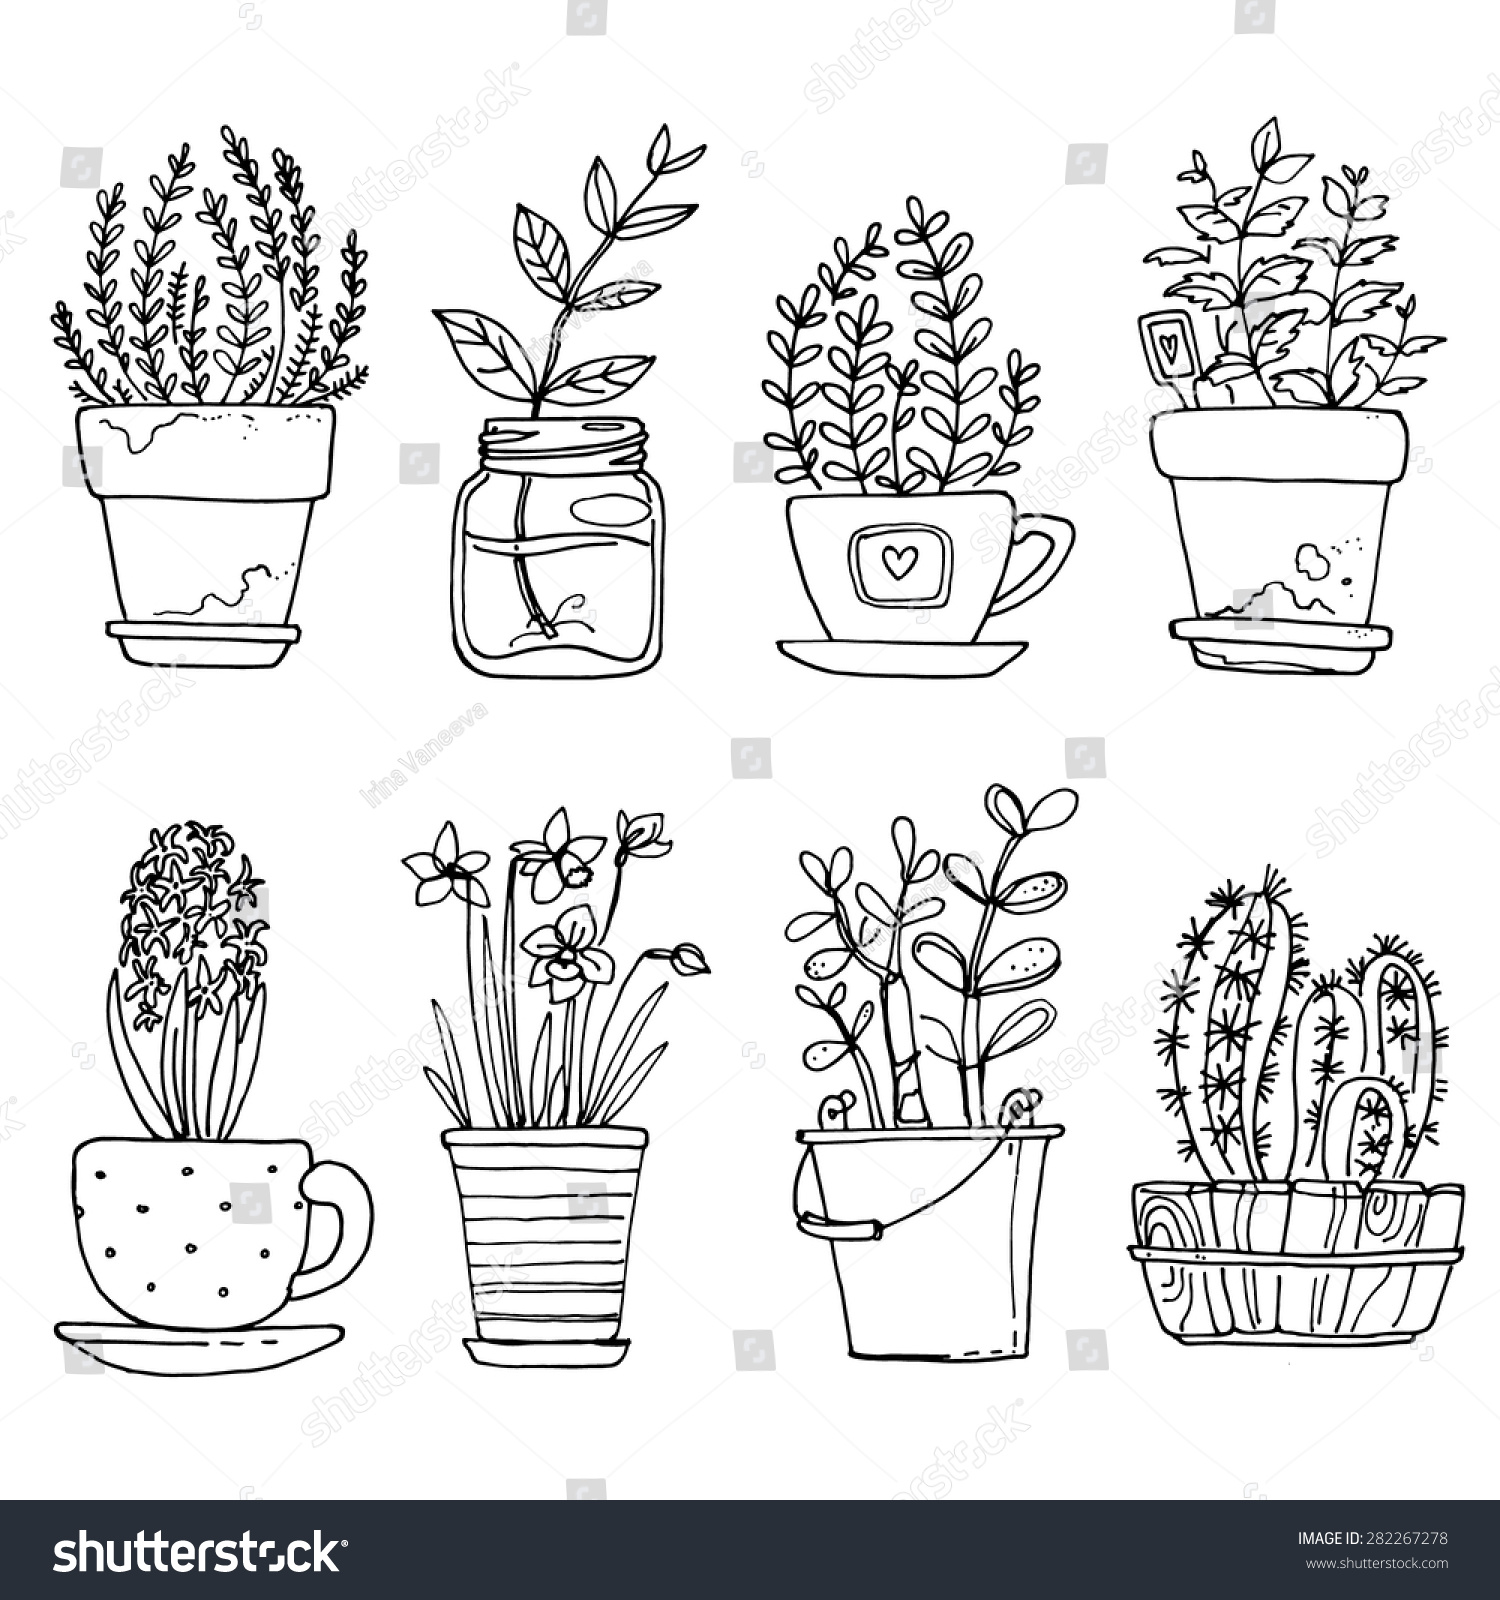 Line Drawing Of Flower Pot : Flowers pots painted black line on stock vector